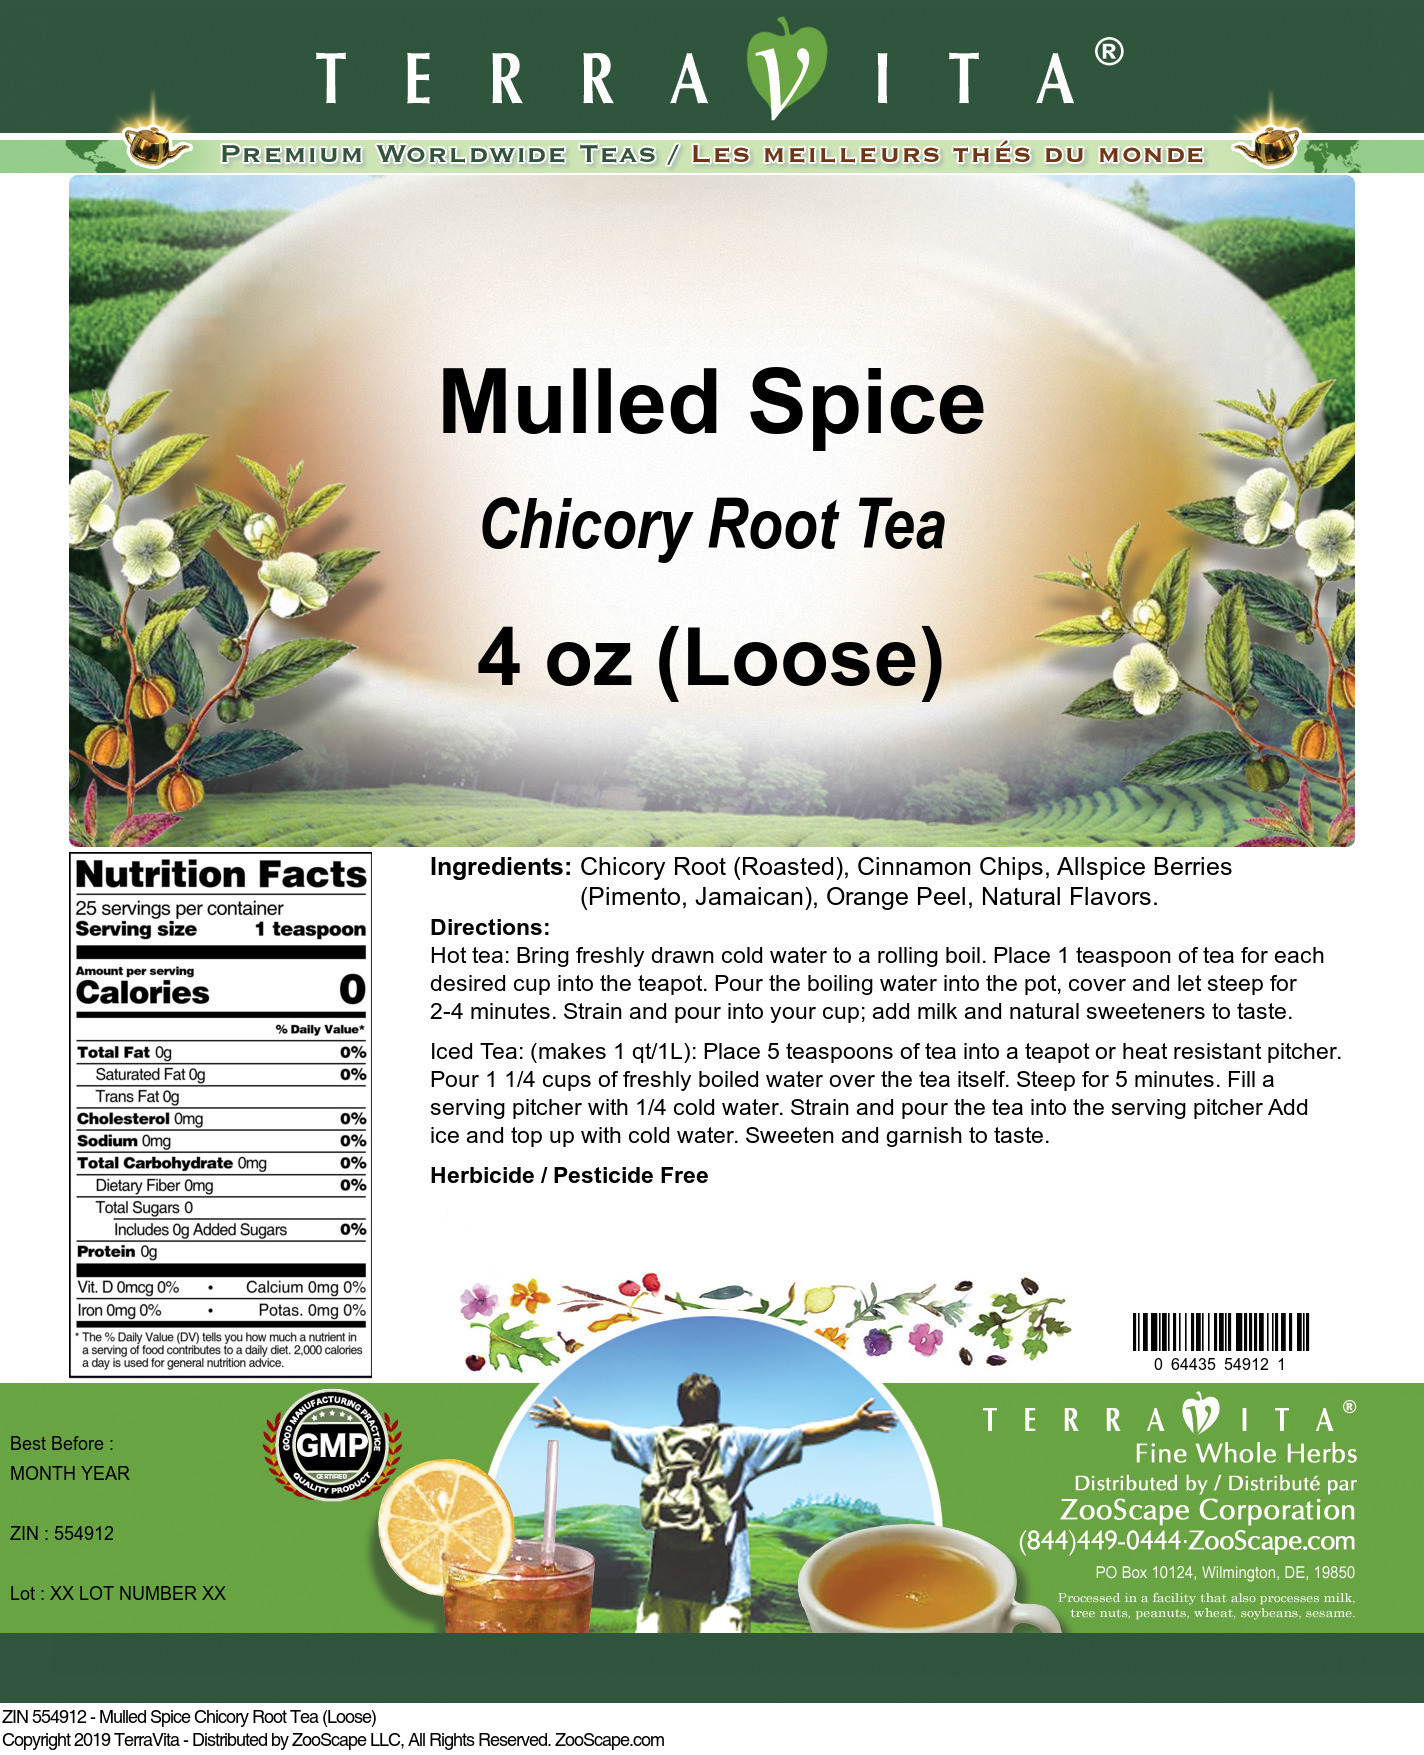 Mulled Spice Chicory Root